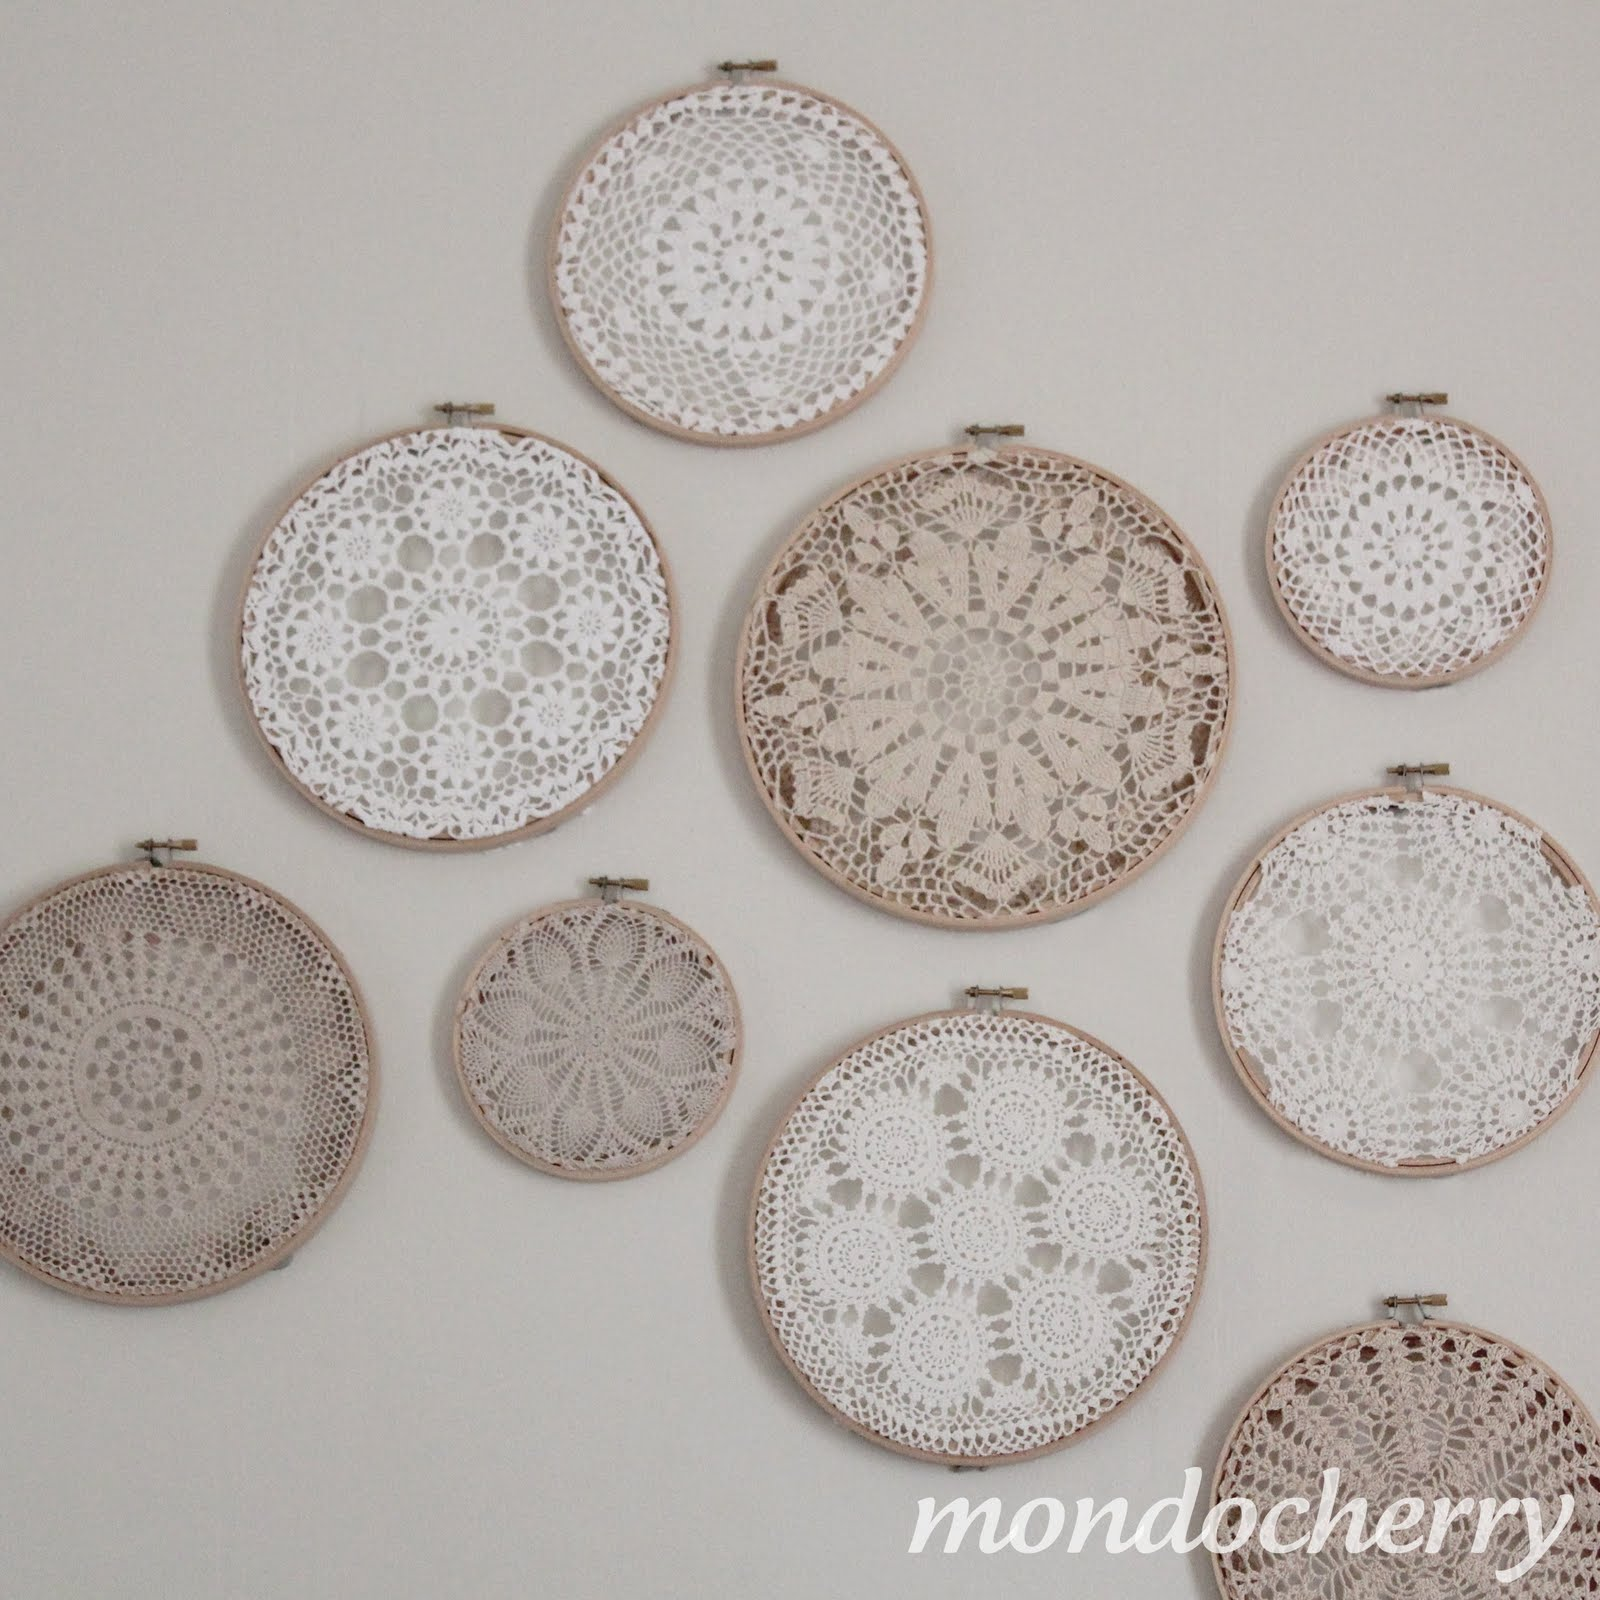 A small bite of mondocherry: embroidery hoops + doilies = art...